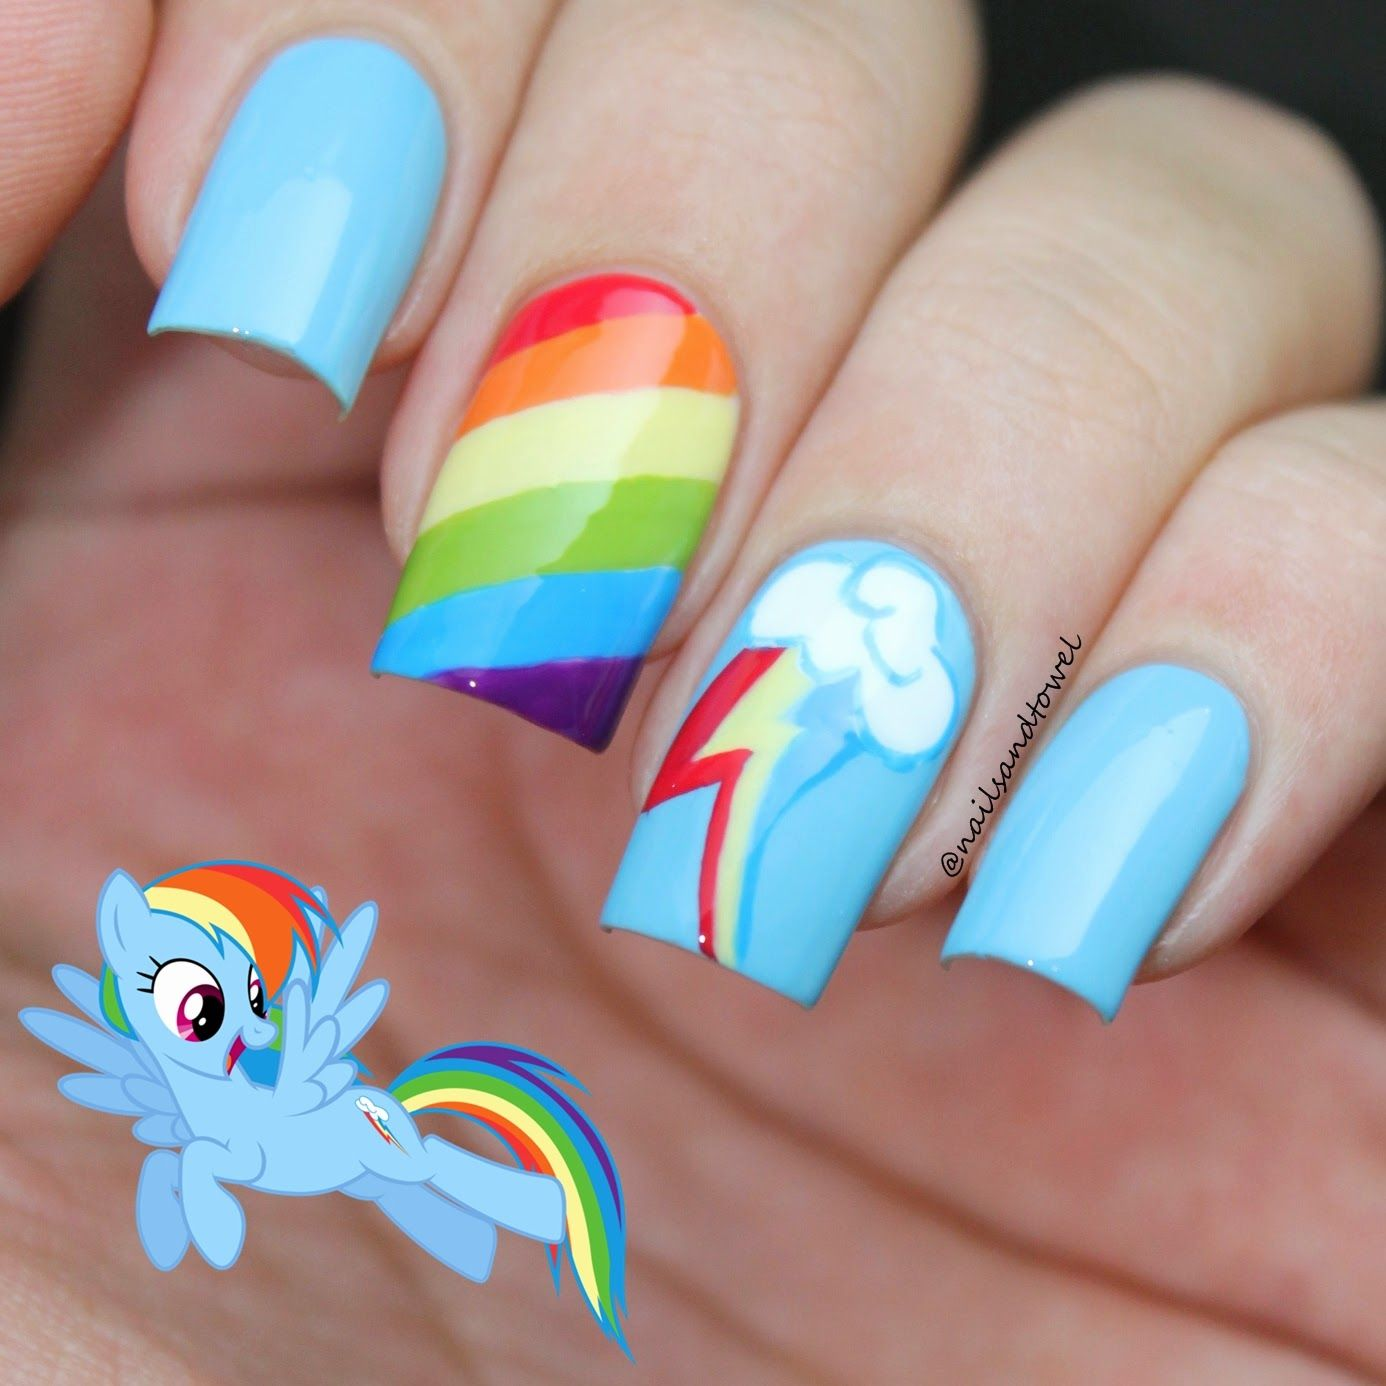 My Nail Art Journal: My Little Pony Nails Inspired | nail art ...